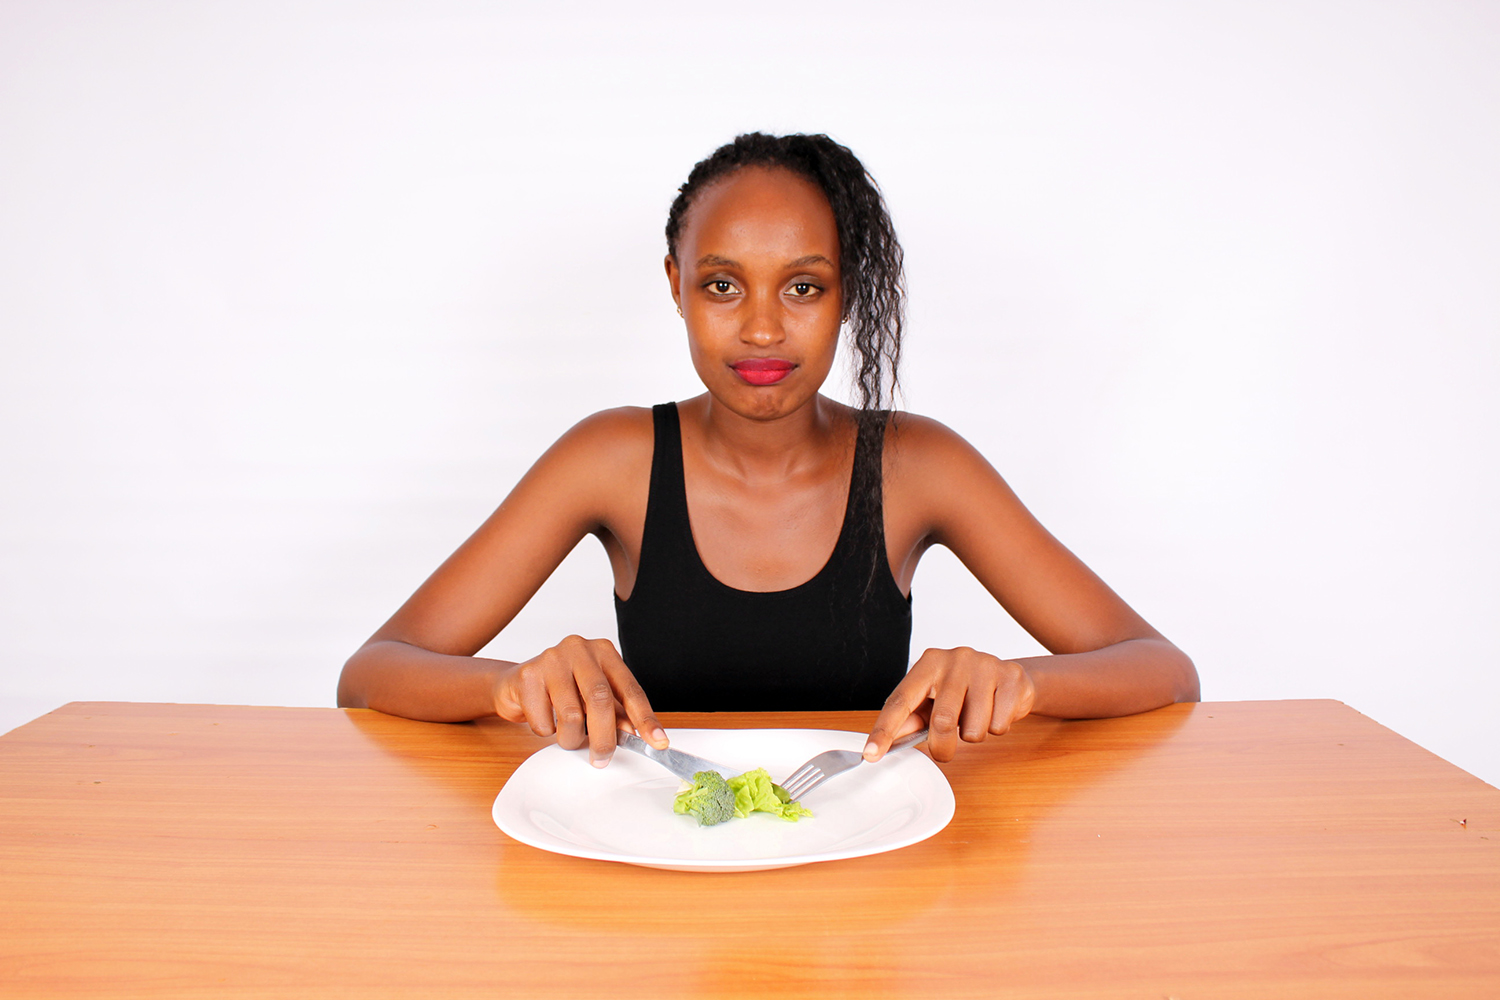 Why do you eat broccoli chicken breasts when you say that you are losing weight? There is still a diet to lose weight